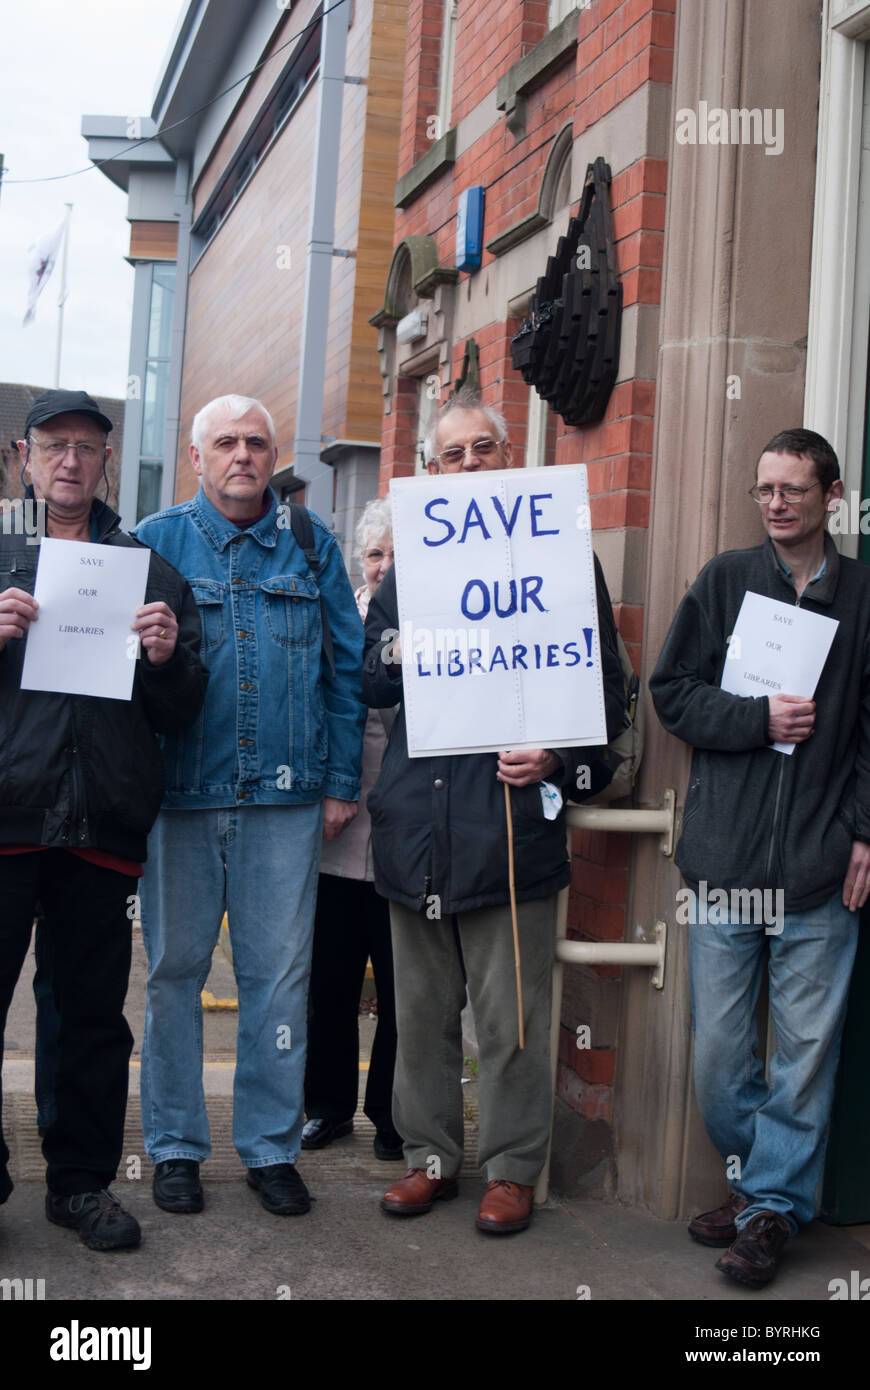 Demonstration outside Carlton Library, Nottingham, against Government cuts. - Stock Image